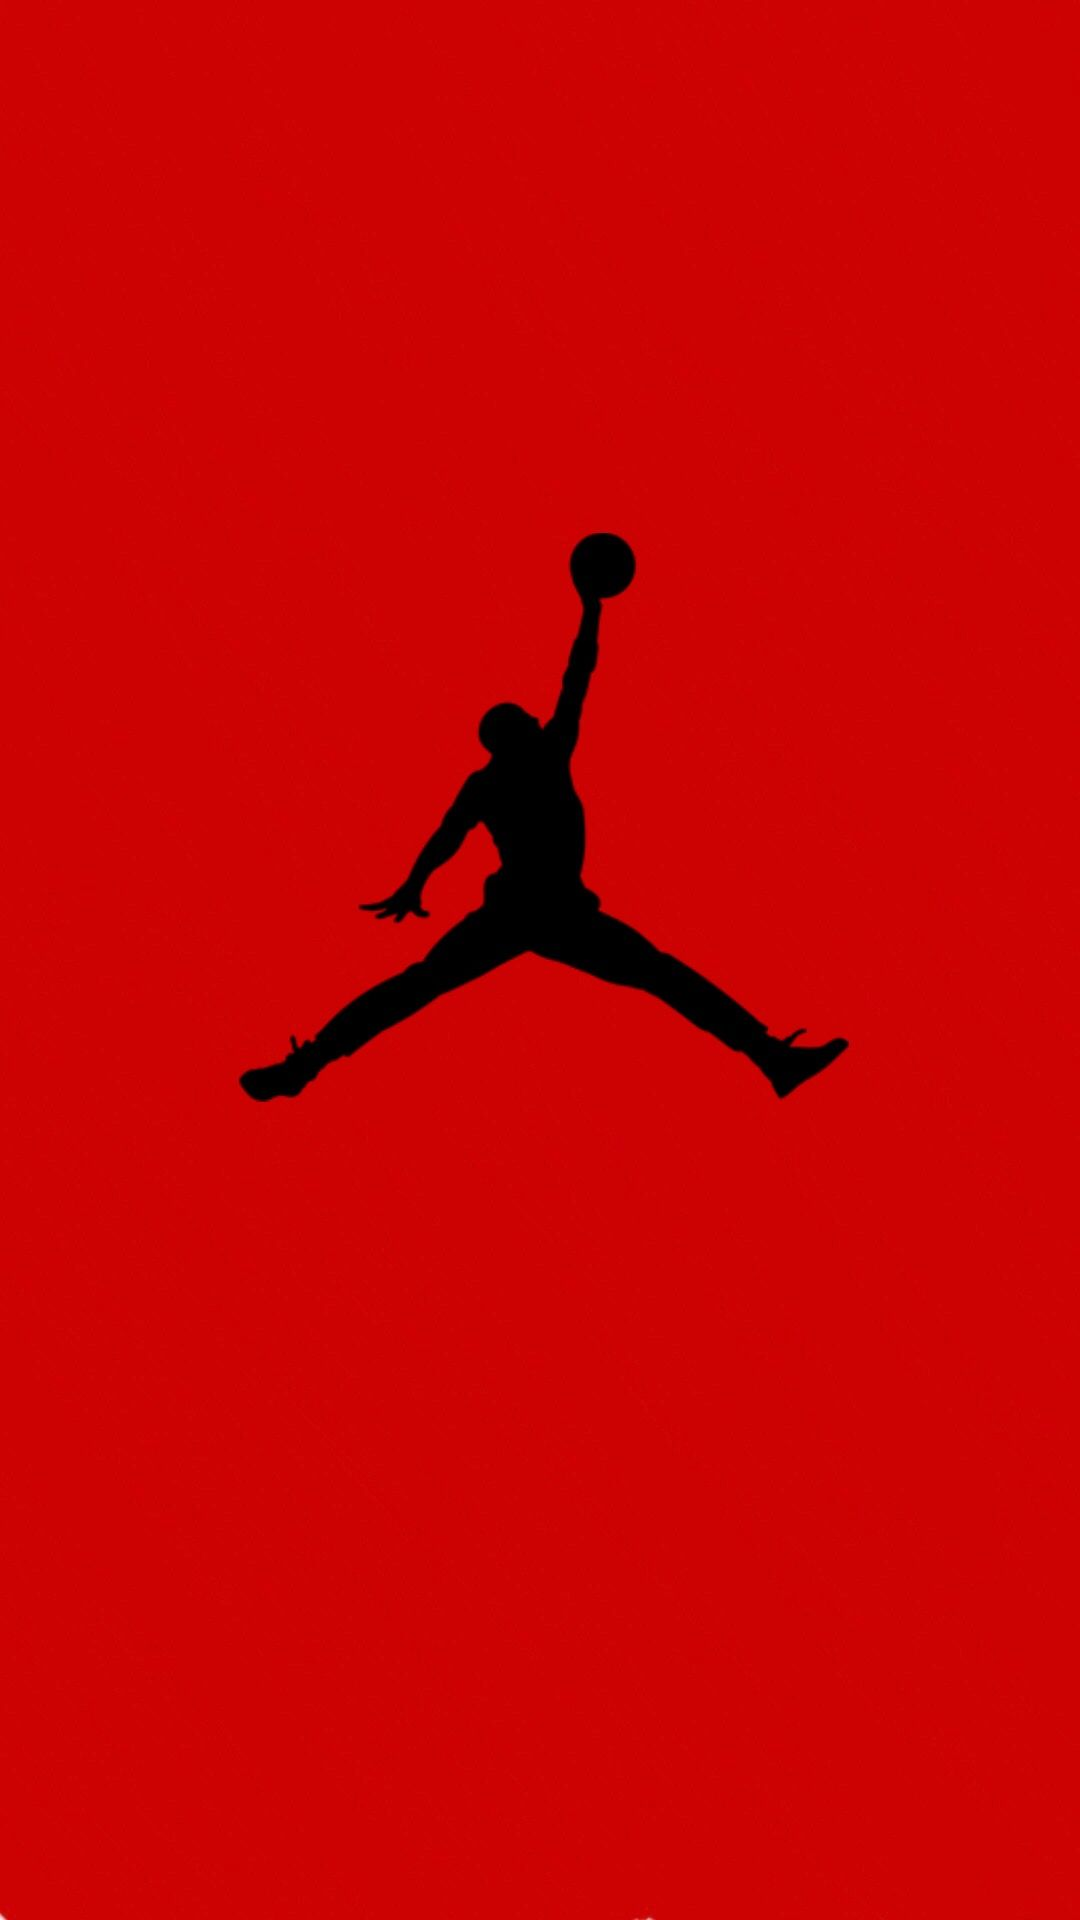 Air Jordan Logo Iphone Background 23 Sports Basketball